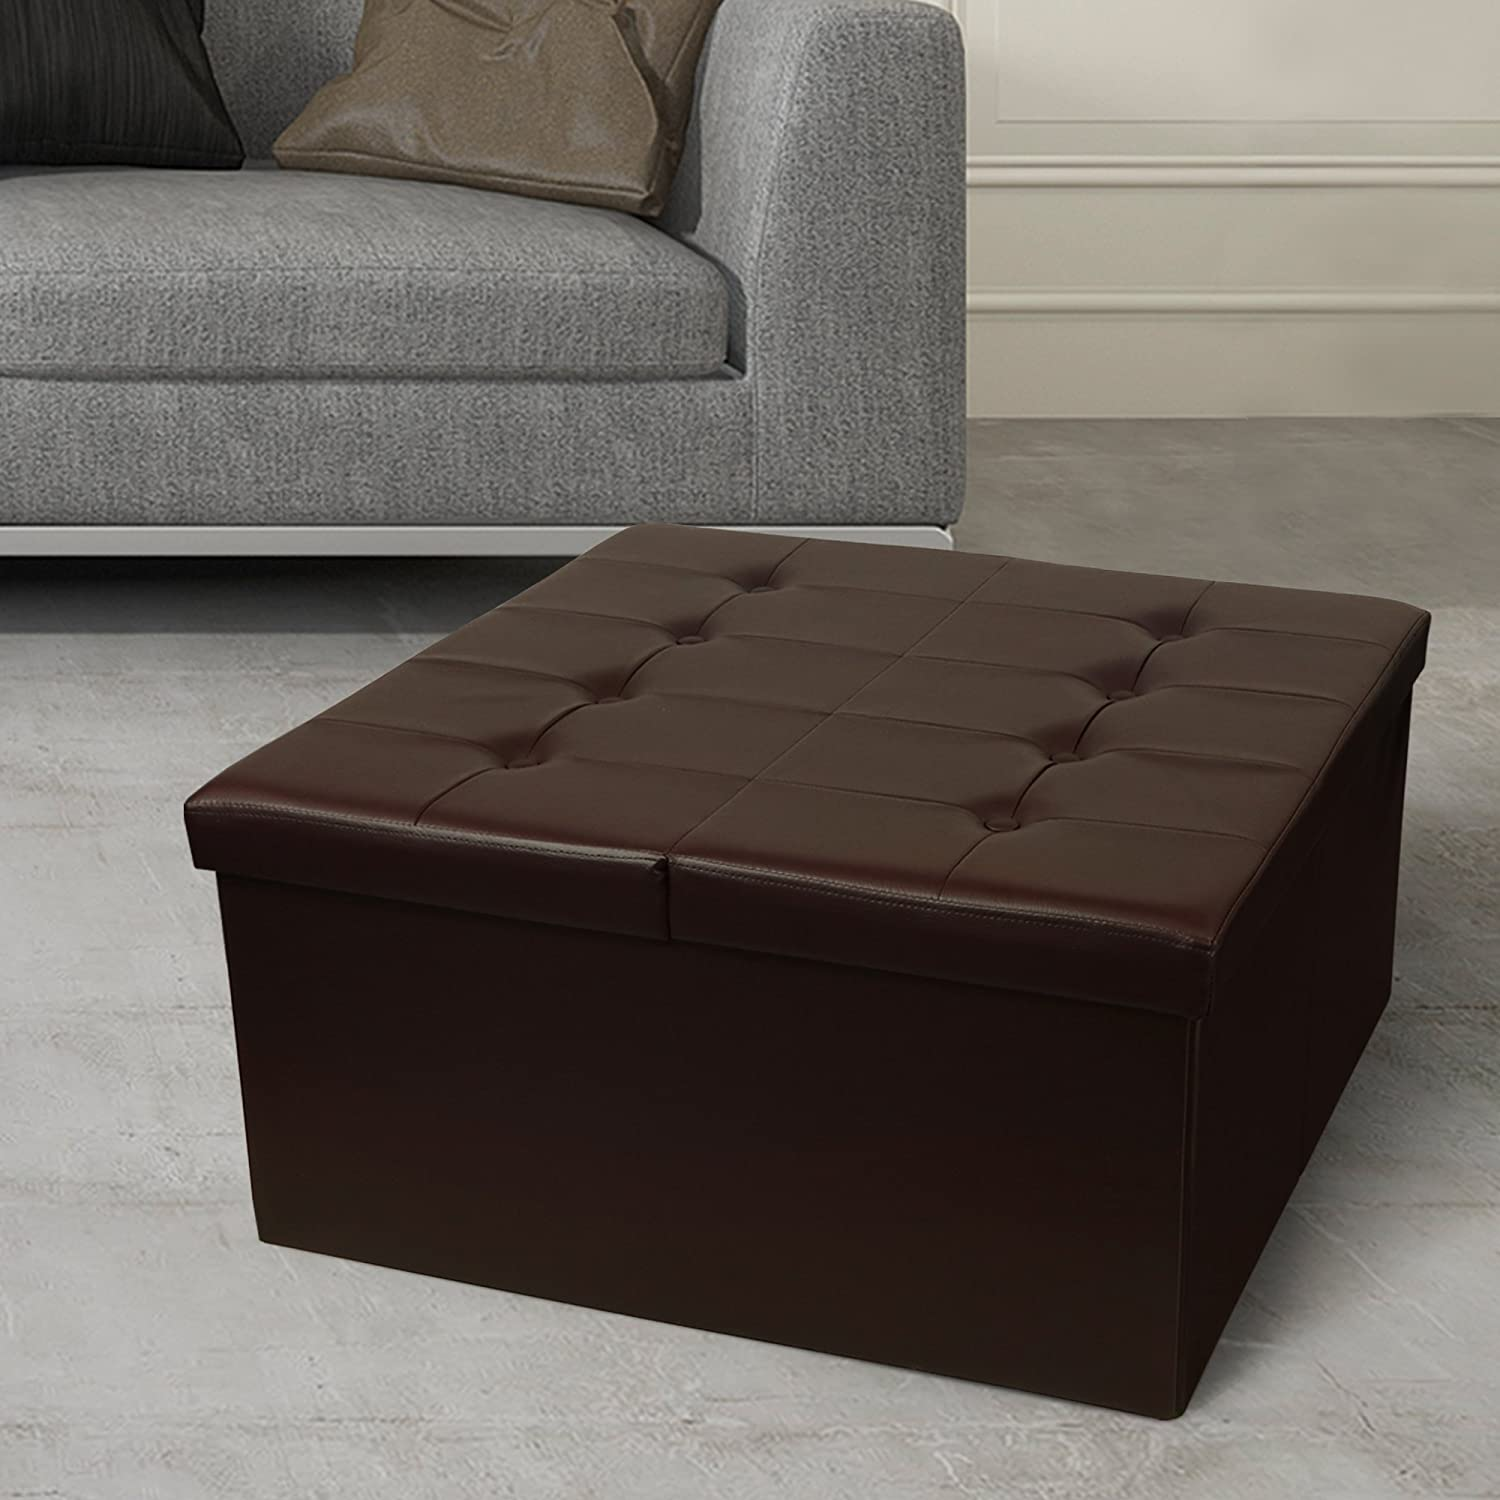 Amazon Com Otto Ben Coffee Table With Smart Lift Top Tufted Folding Faux Leather Trunk Ottomans Bench Foot Rest 30 Square Chocolate Furniture Decor